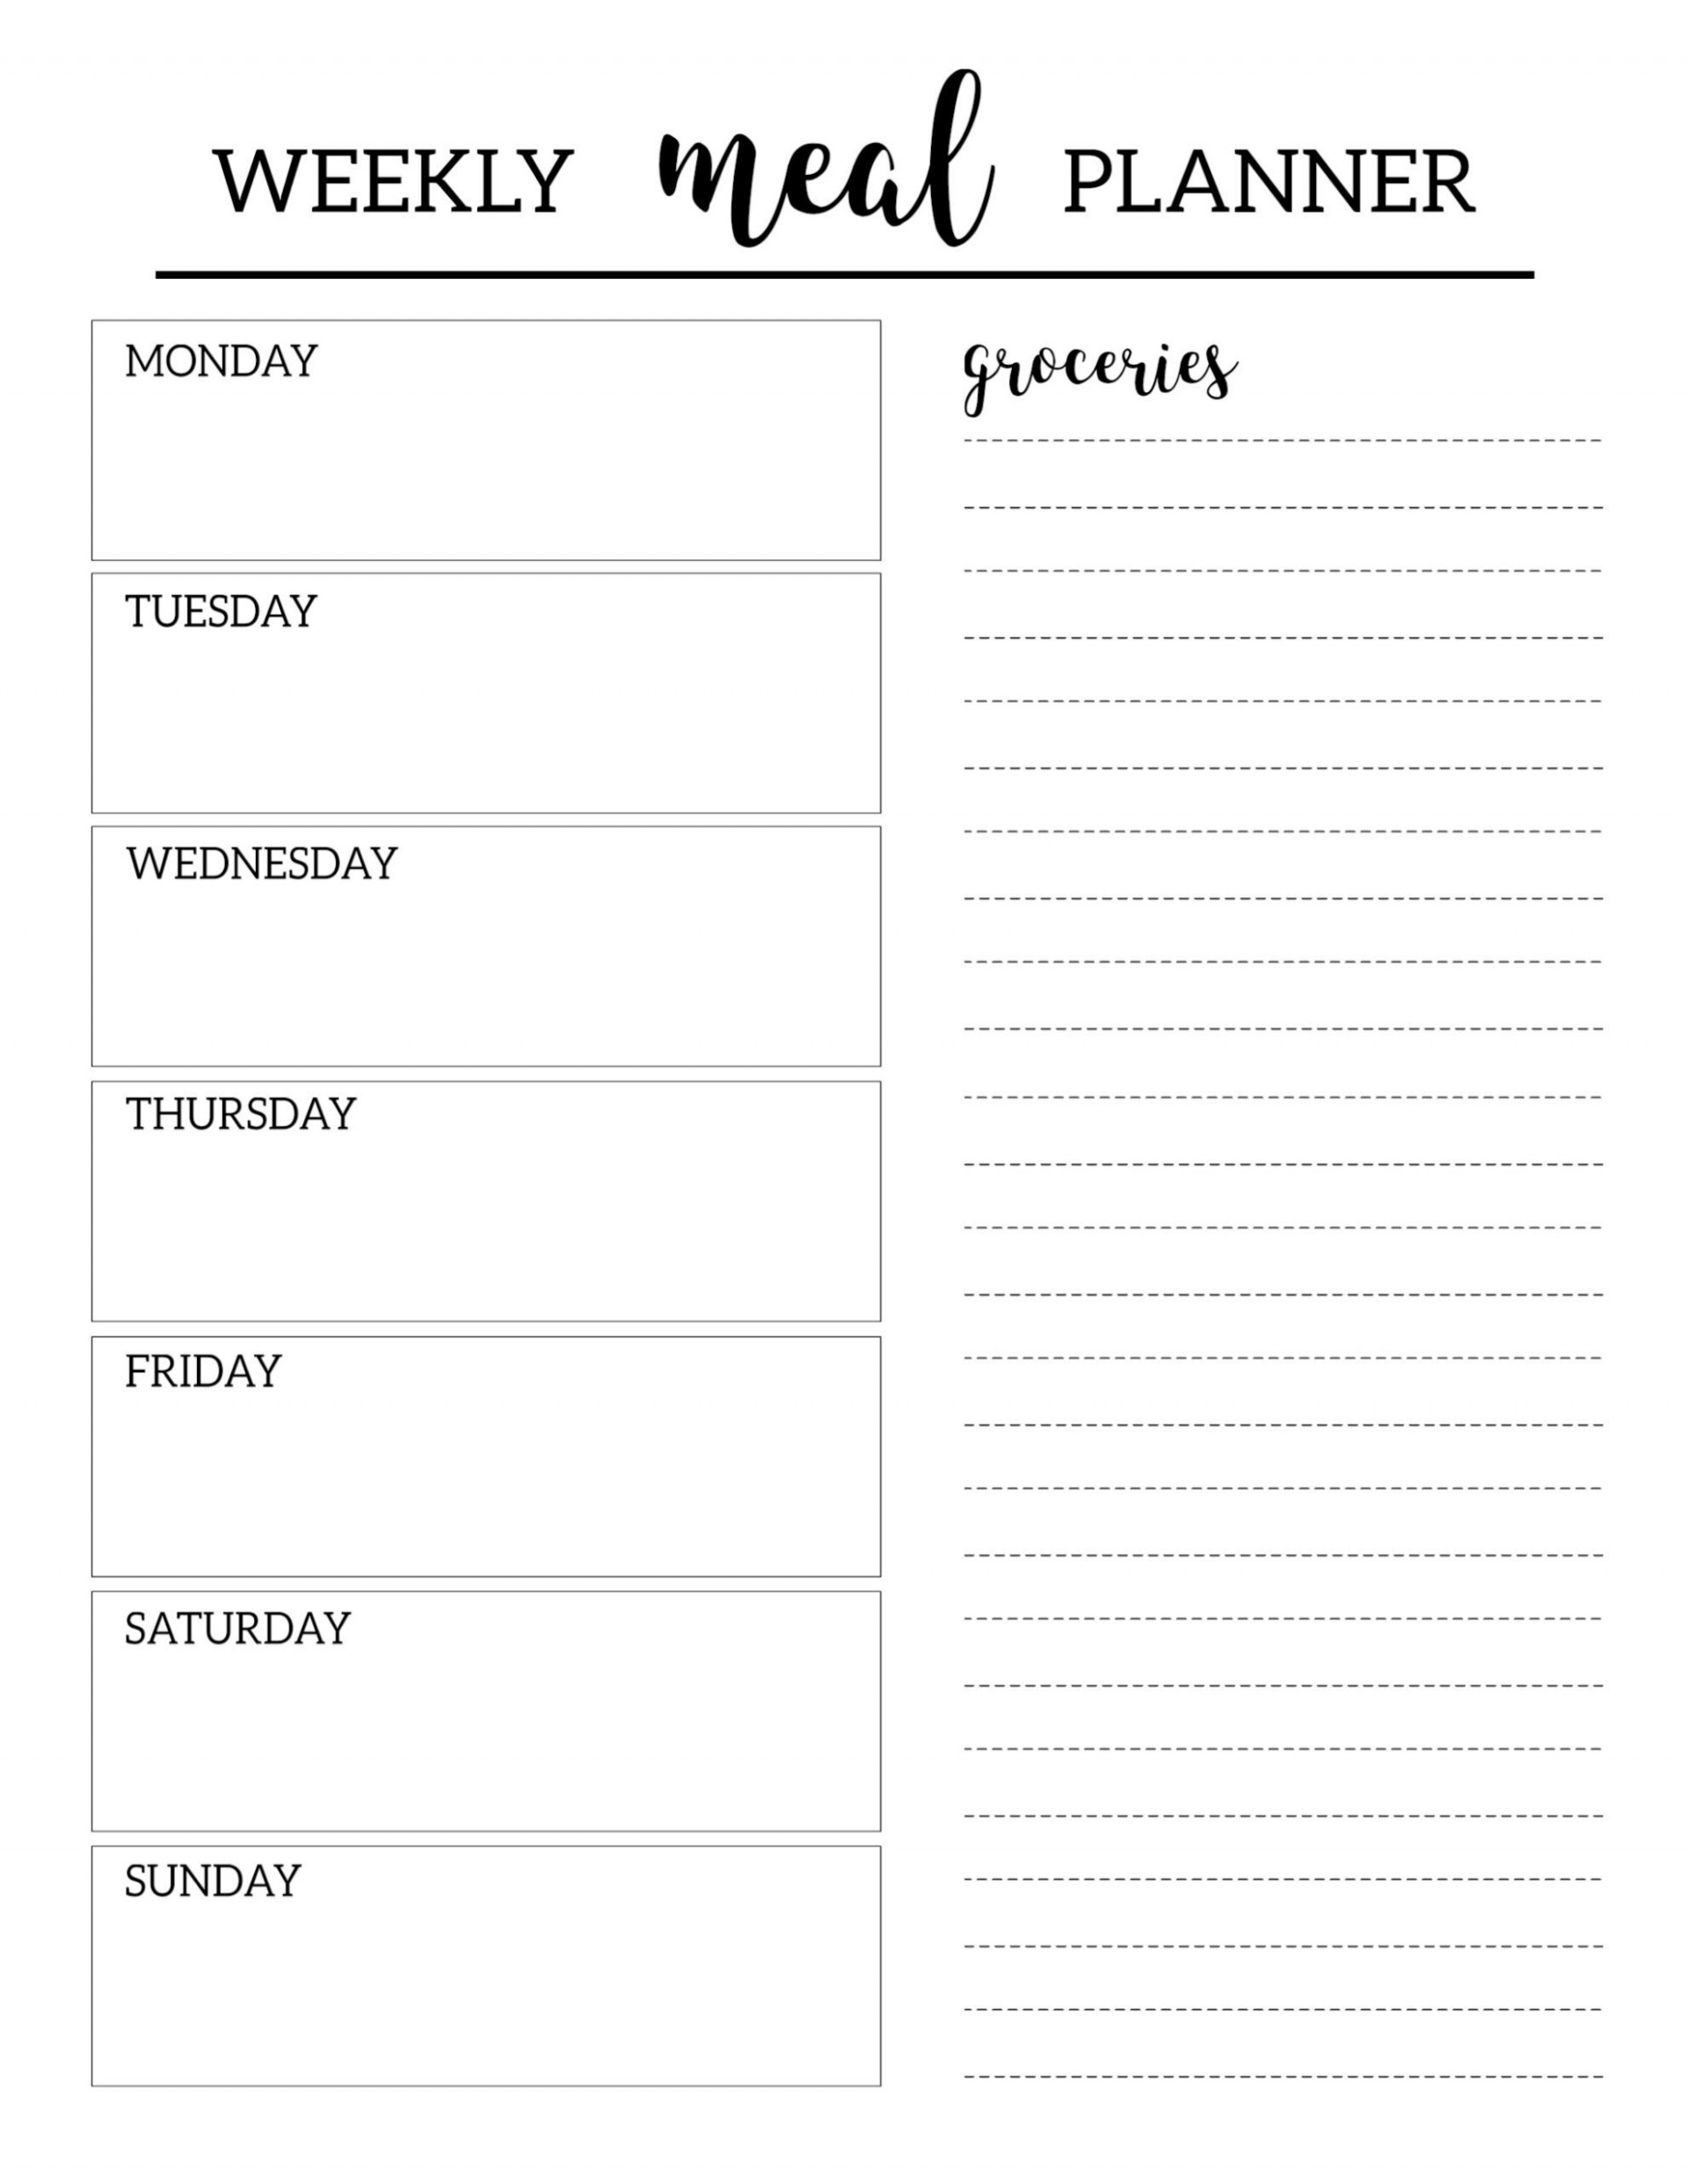 006 Rare Meal Plan Calendar Template Inspiration  Excel Weekly 30 Day1920